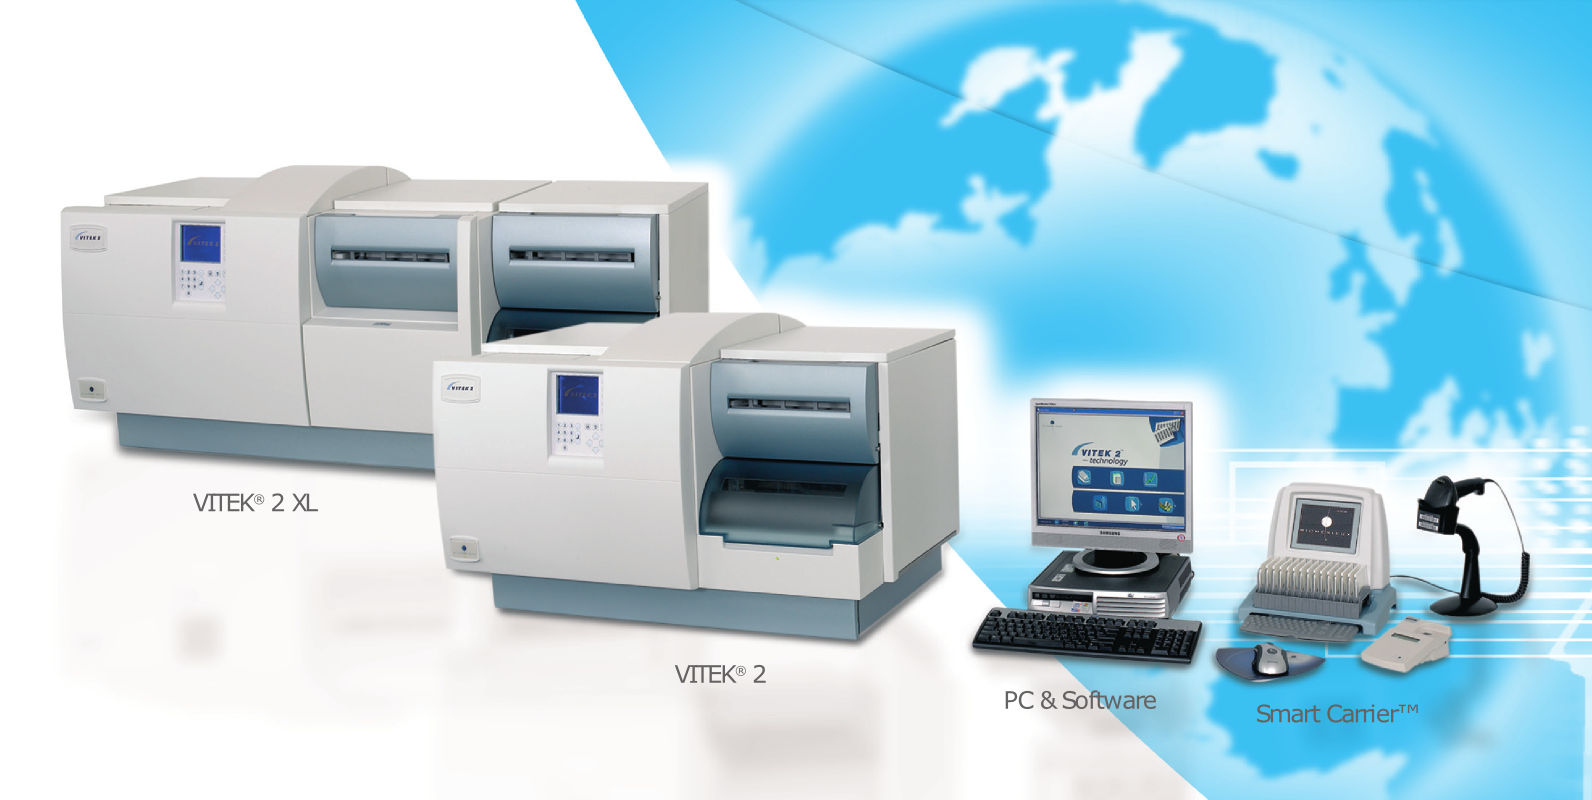 Vitek 2 SystemMICROBIAL DETECTION SYSTEMMICROBIAL IDENTIFICATION AND ANTIBIOTIC SUSCEPTIBILITY TESTING SYSTEMProduct Page | PDF | eMenu  | eMenu2